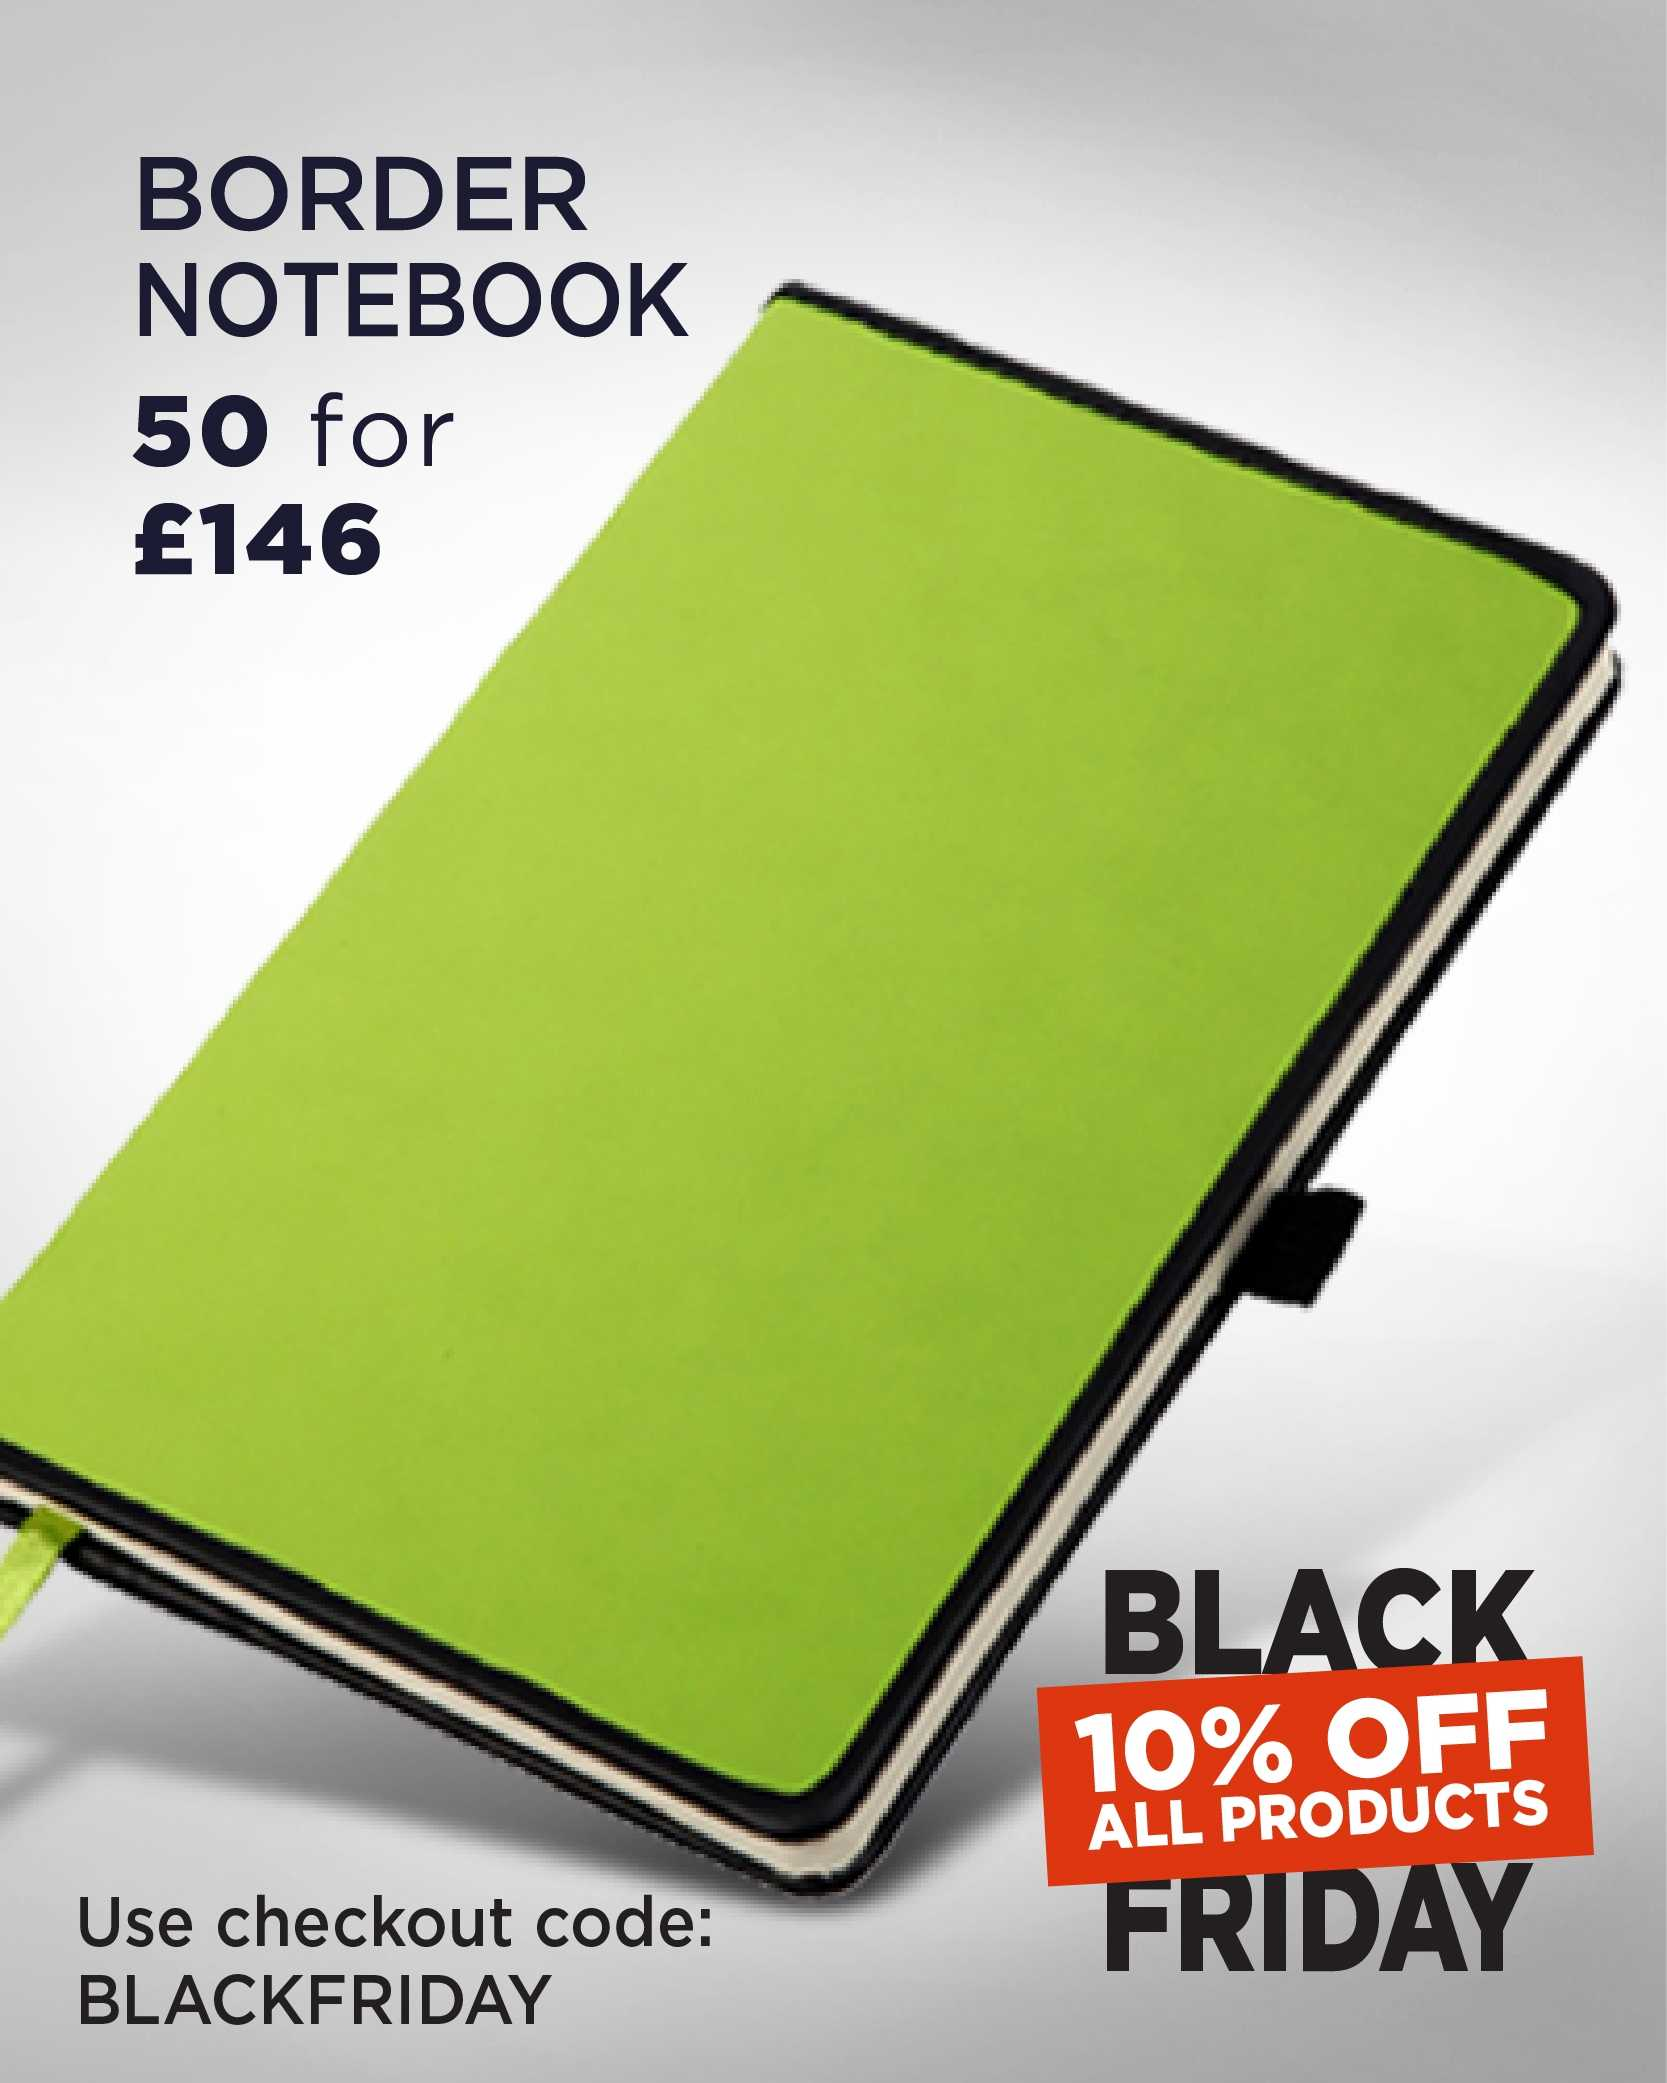 Black Friday Border Notebook